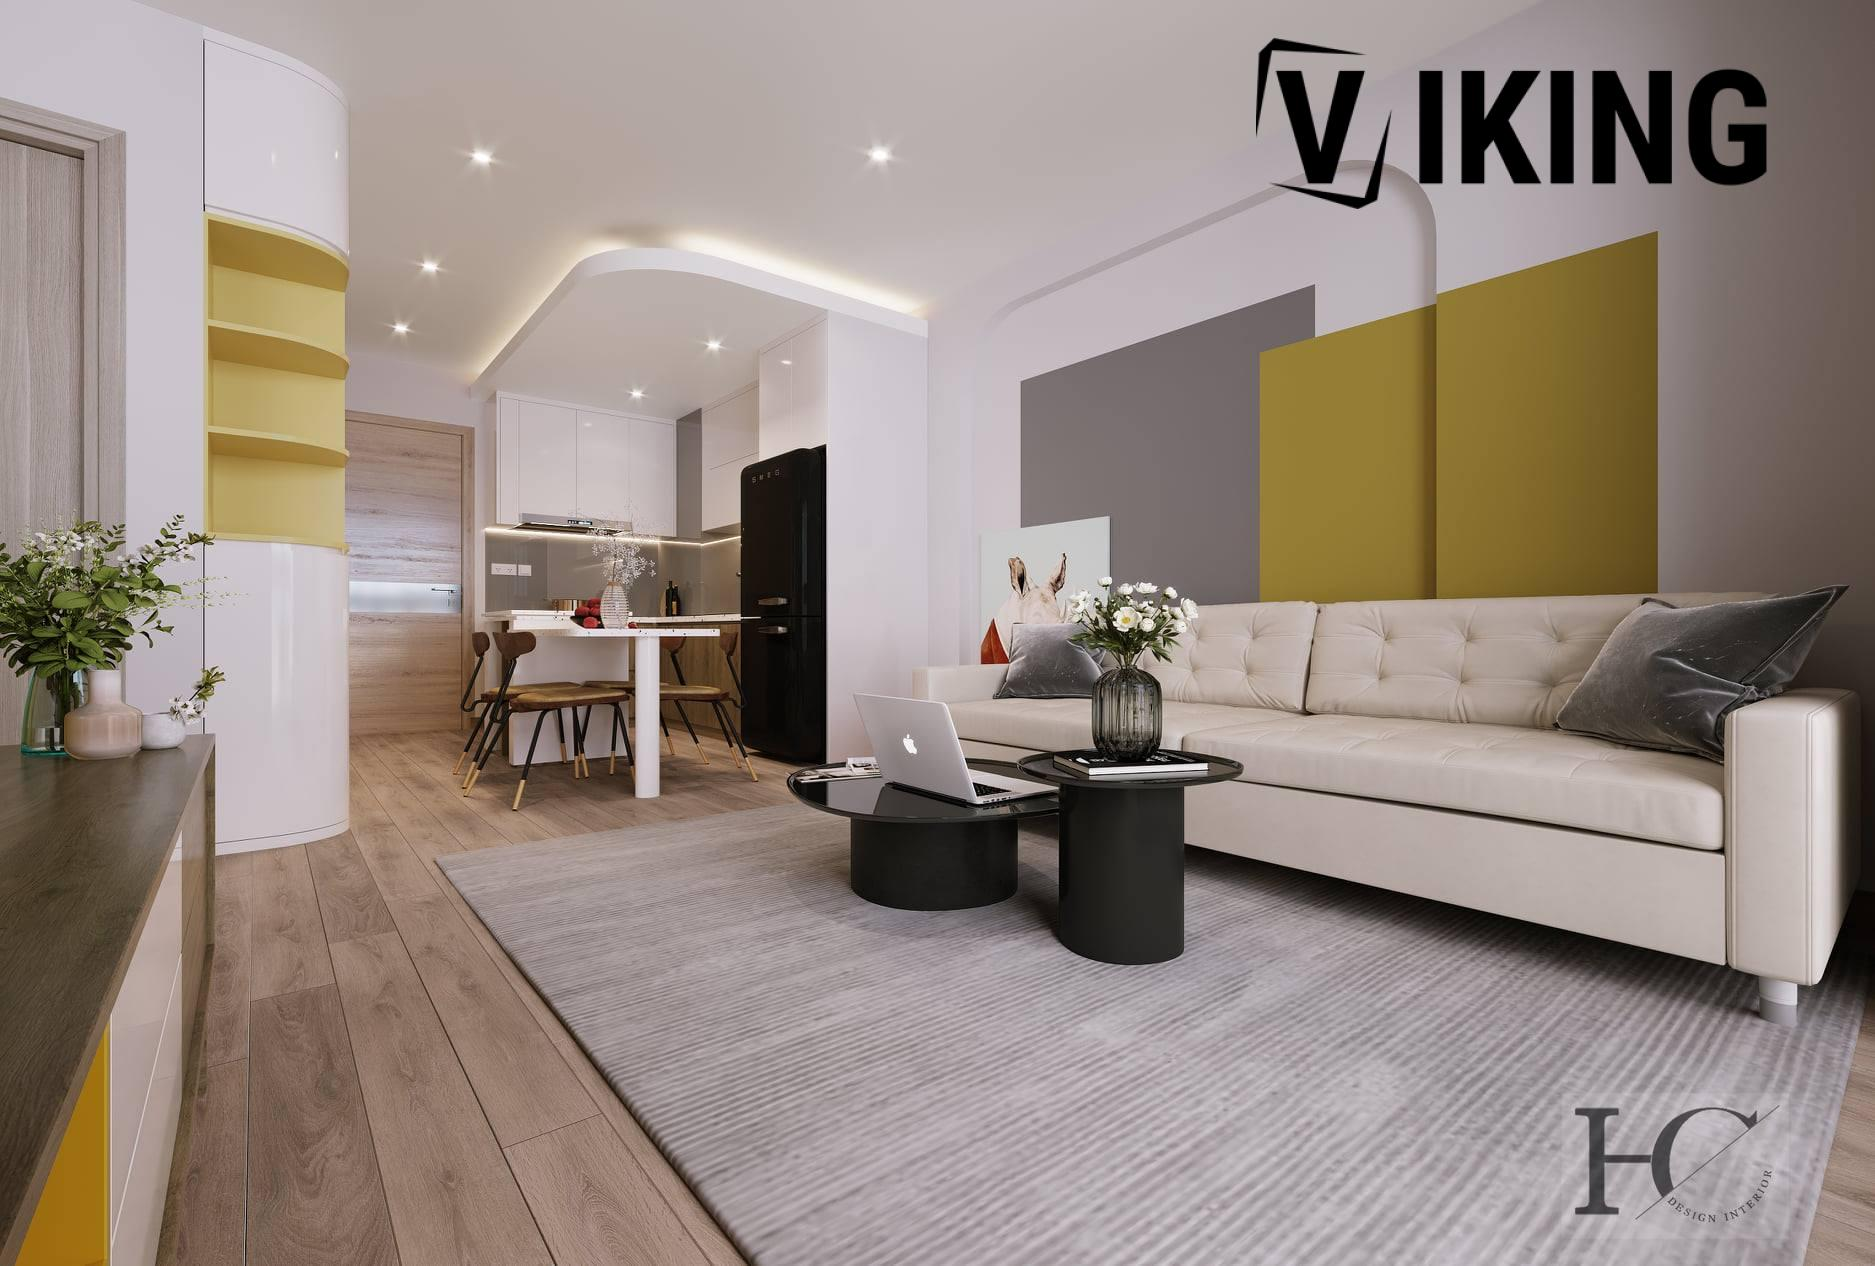 4491.Livingroom Scene 3dsmax File free download by Nguy Huu Cong 2